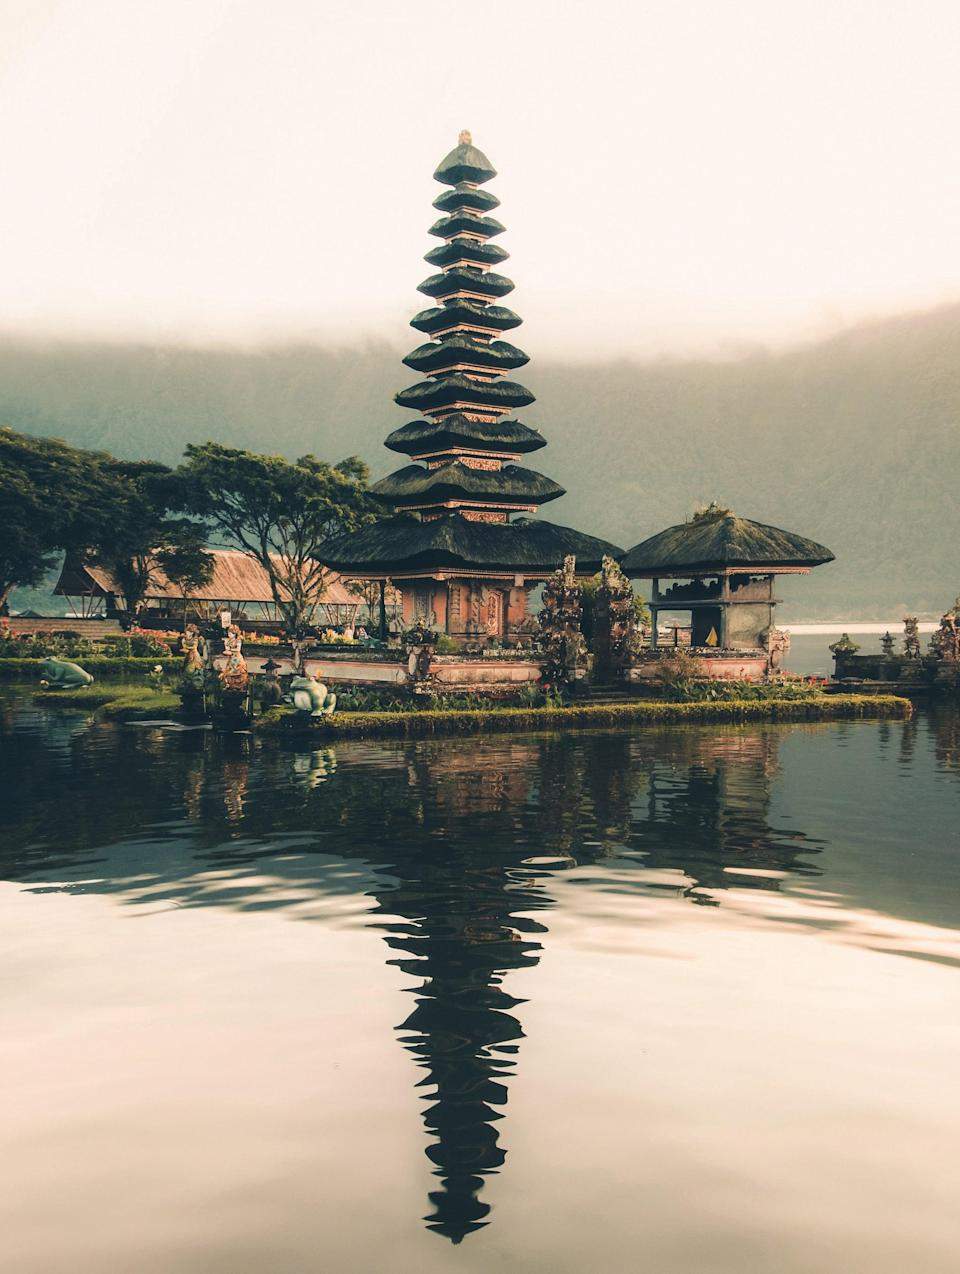 <p>Bali is always a sought-after destination, and now there's even more reason to go. Opening in 2021, <span>Anantara Ubud Bali Resort</span> will be located in the hillside village of Payangan, 35 minutes from the center of Ubud by car. Guests will be able to choose from different room categories like suites and pool villas. Beyond the resort, some of the island's top attractions are nearby, including the Hanging Gardens, the famed rice terraces, and Puri Saren Royal Palace, while Bali's famous Seminyak Beach and vibrant restaurant and bar scene are just a day trip away.</p>